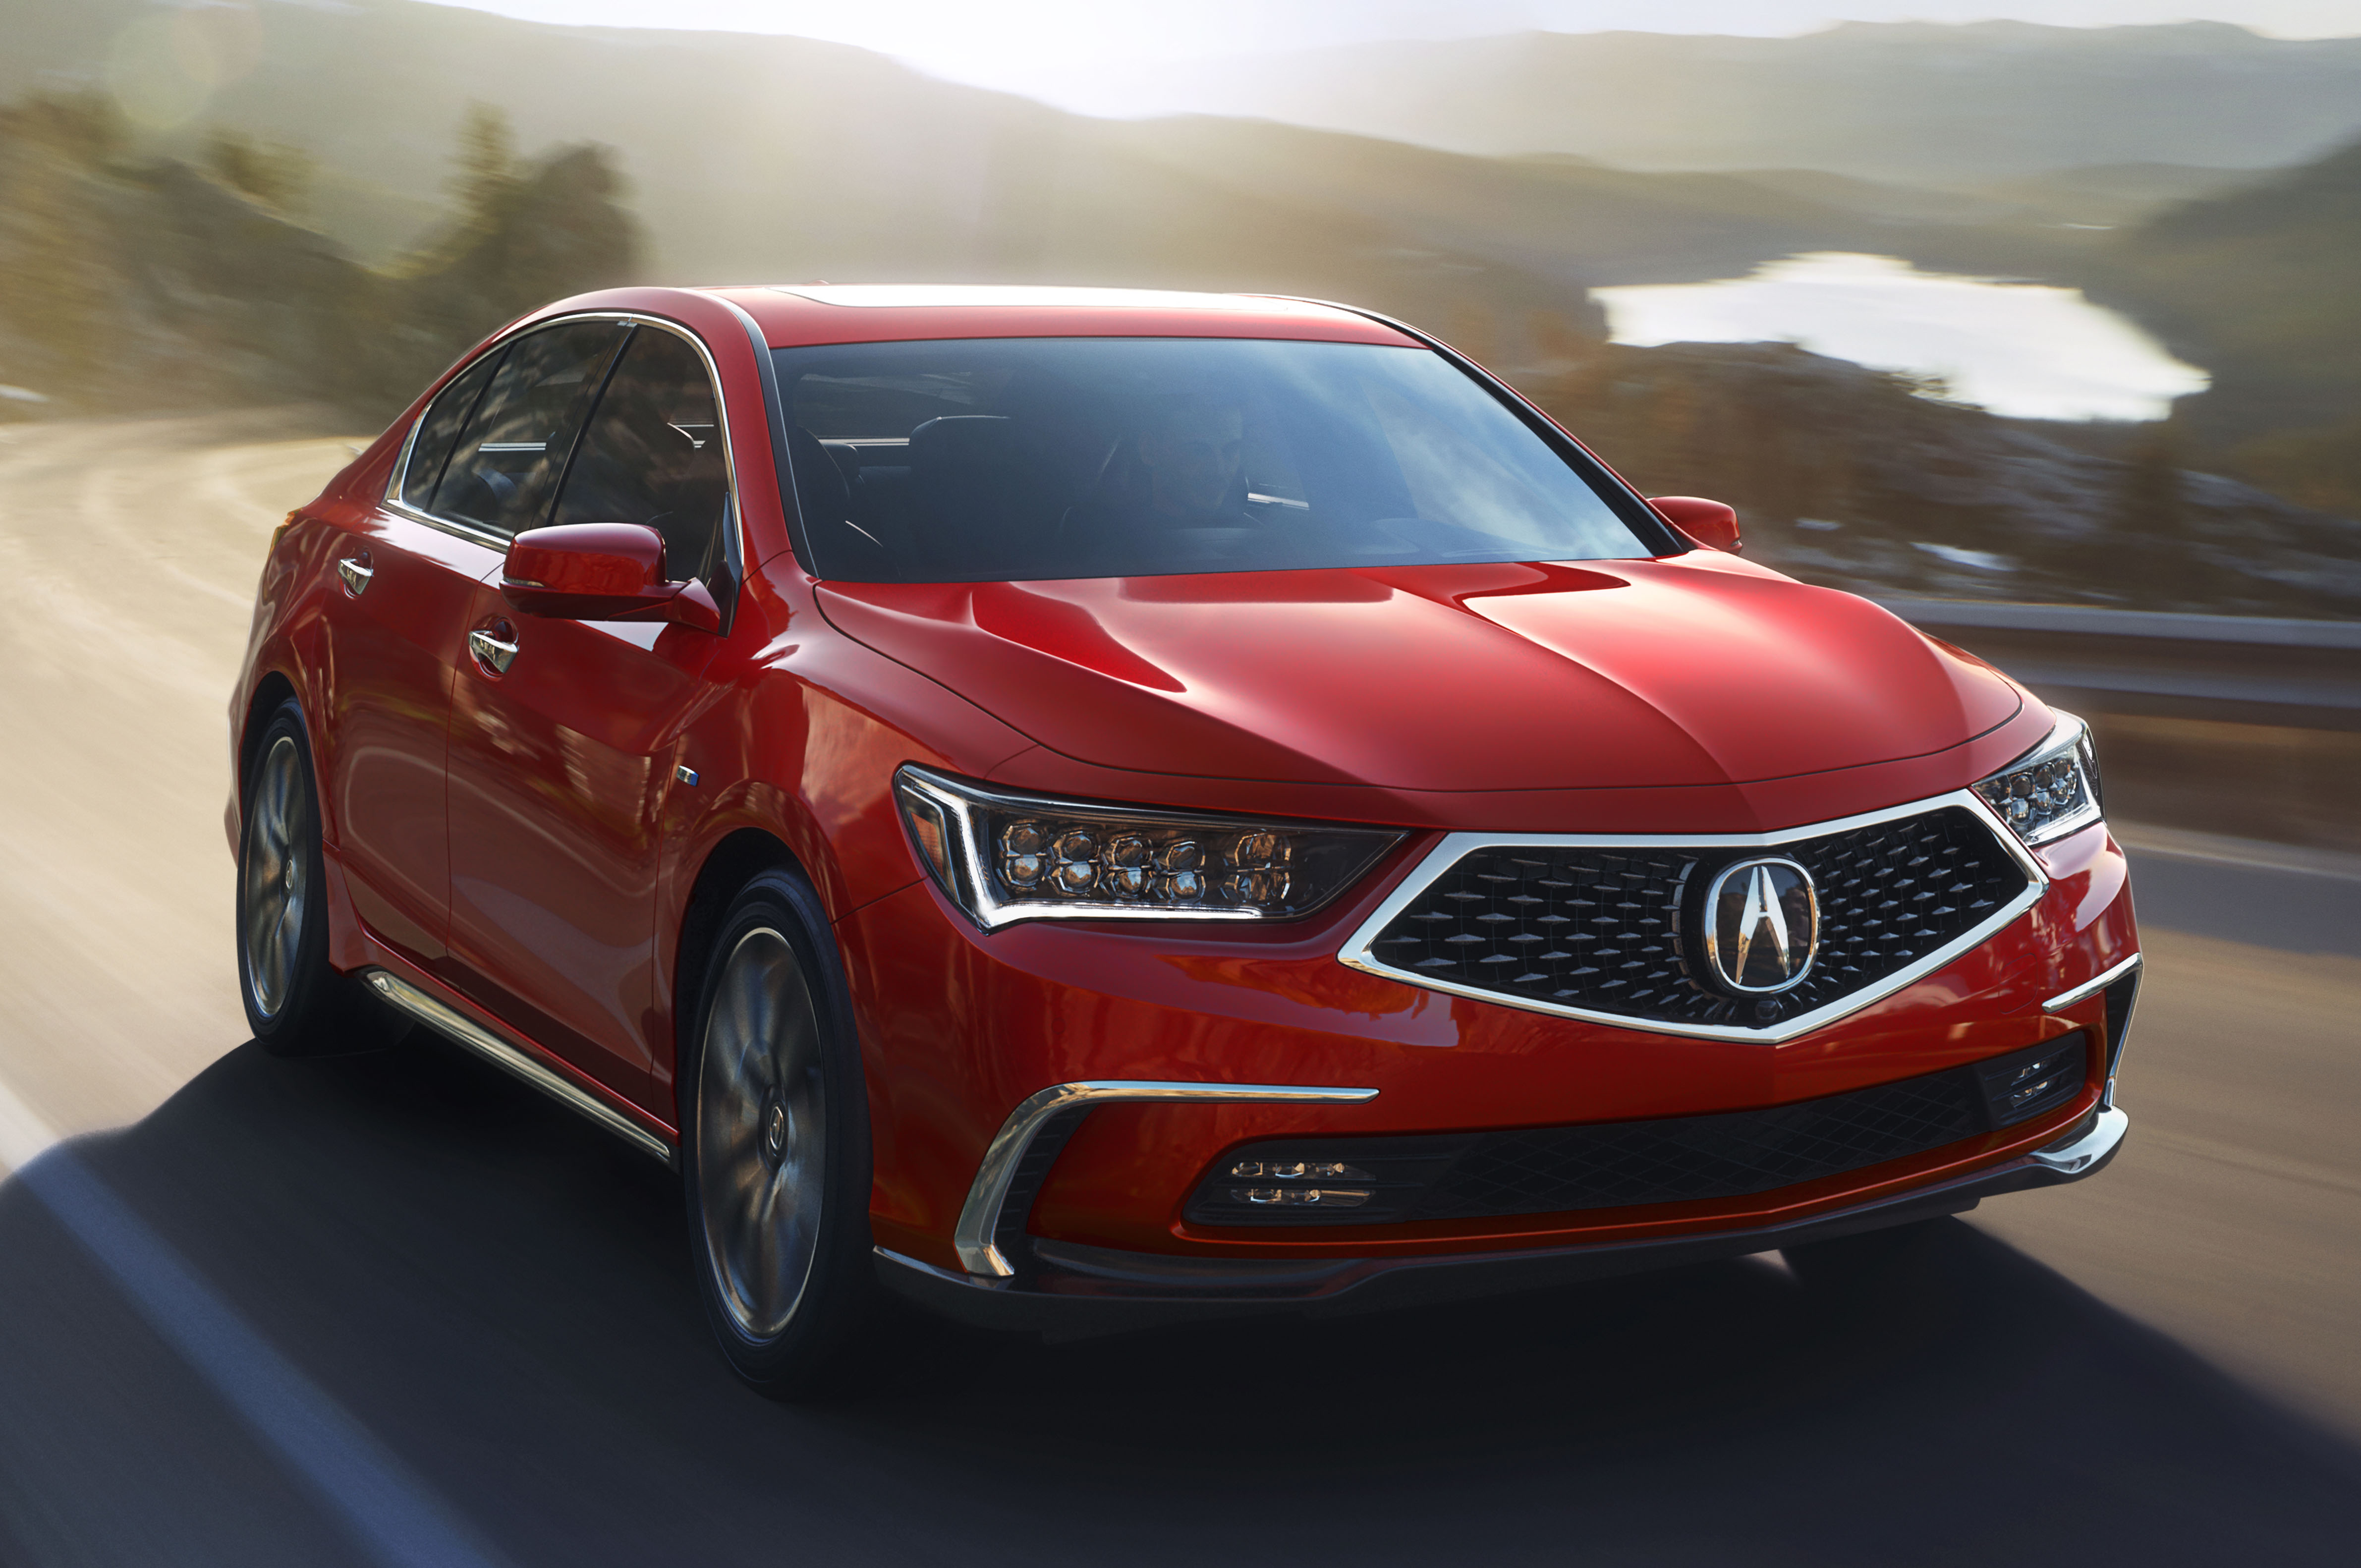 2018 Acura RLX Front Three Quarters